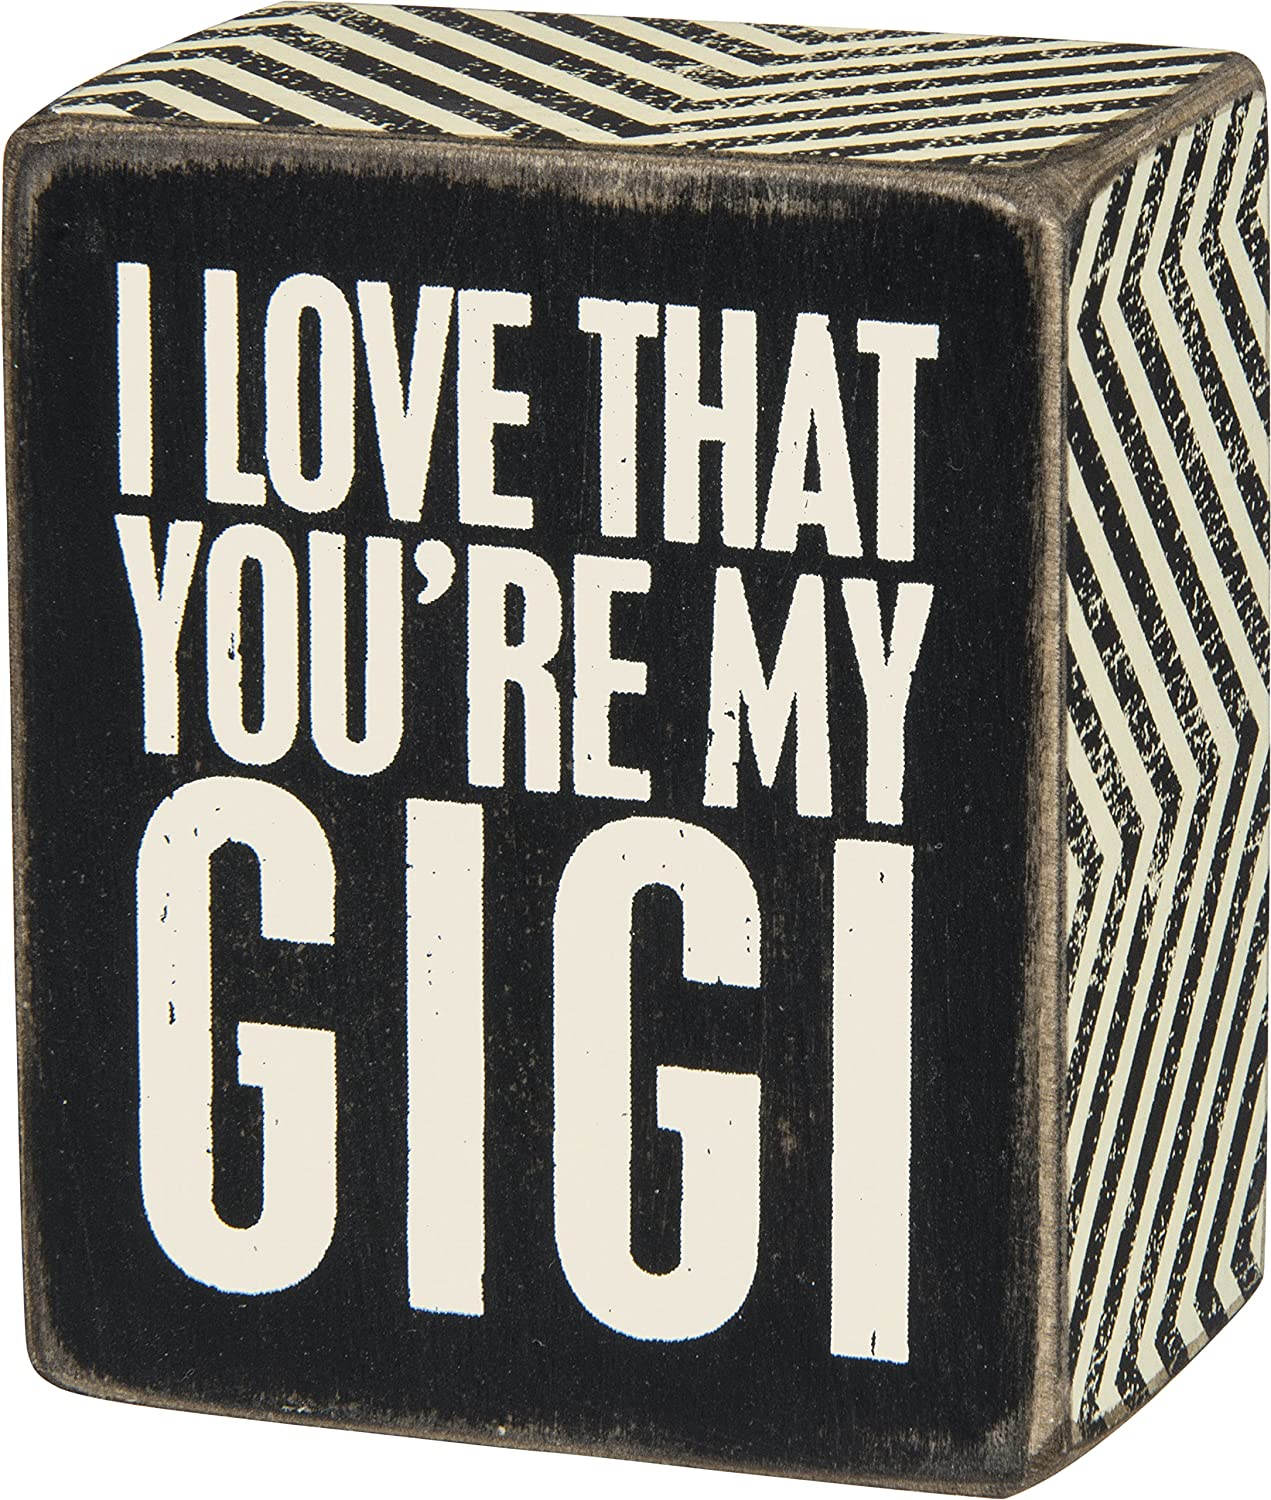 Primitives by Kathy Small 2.5 x 3 Inch Wooden Box Sign I Love That Youre My GIGI For Grandma Nana, Black